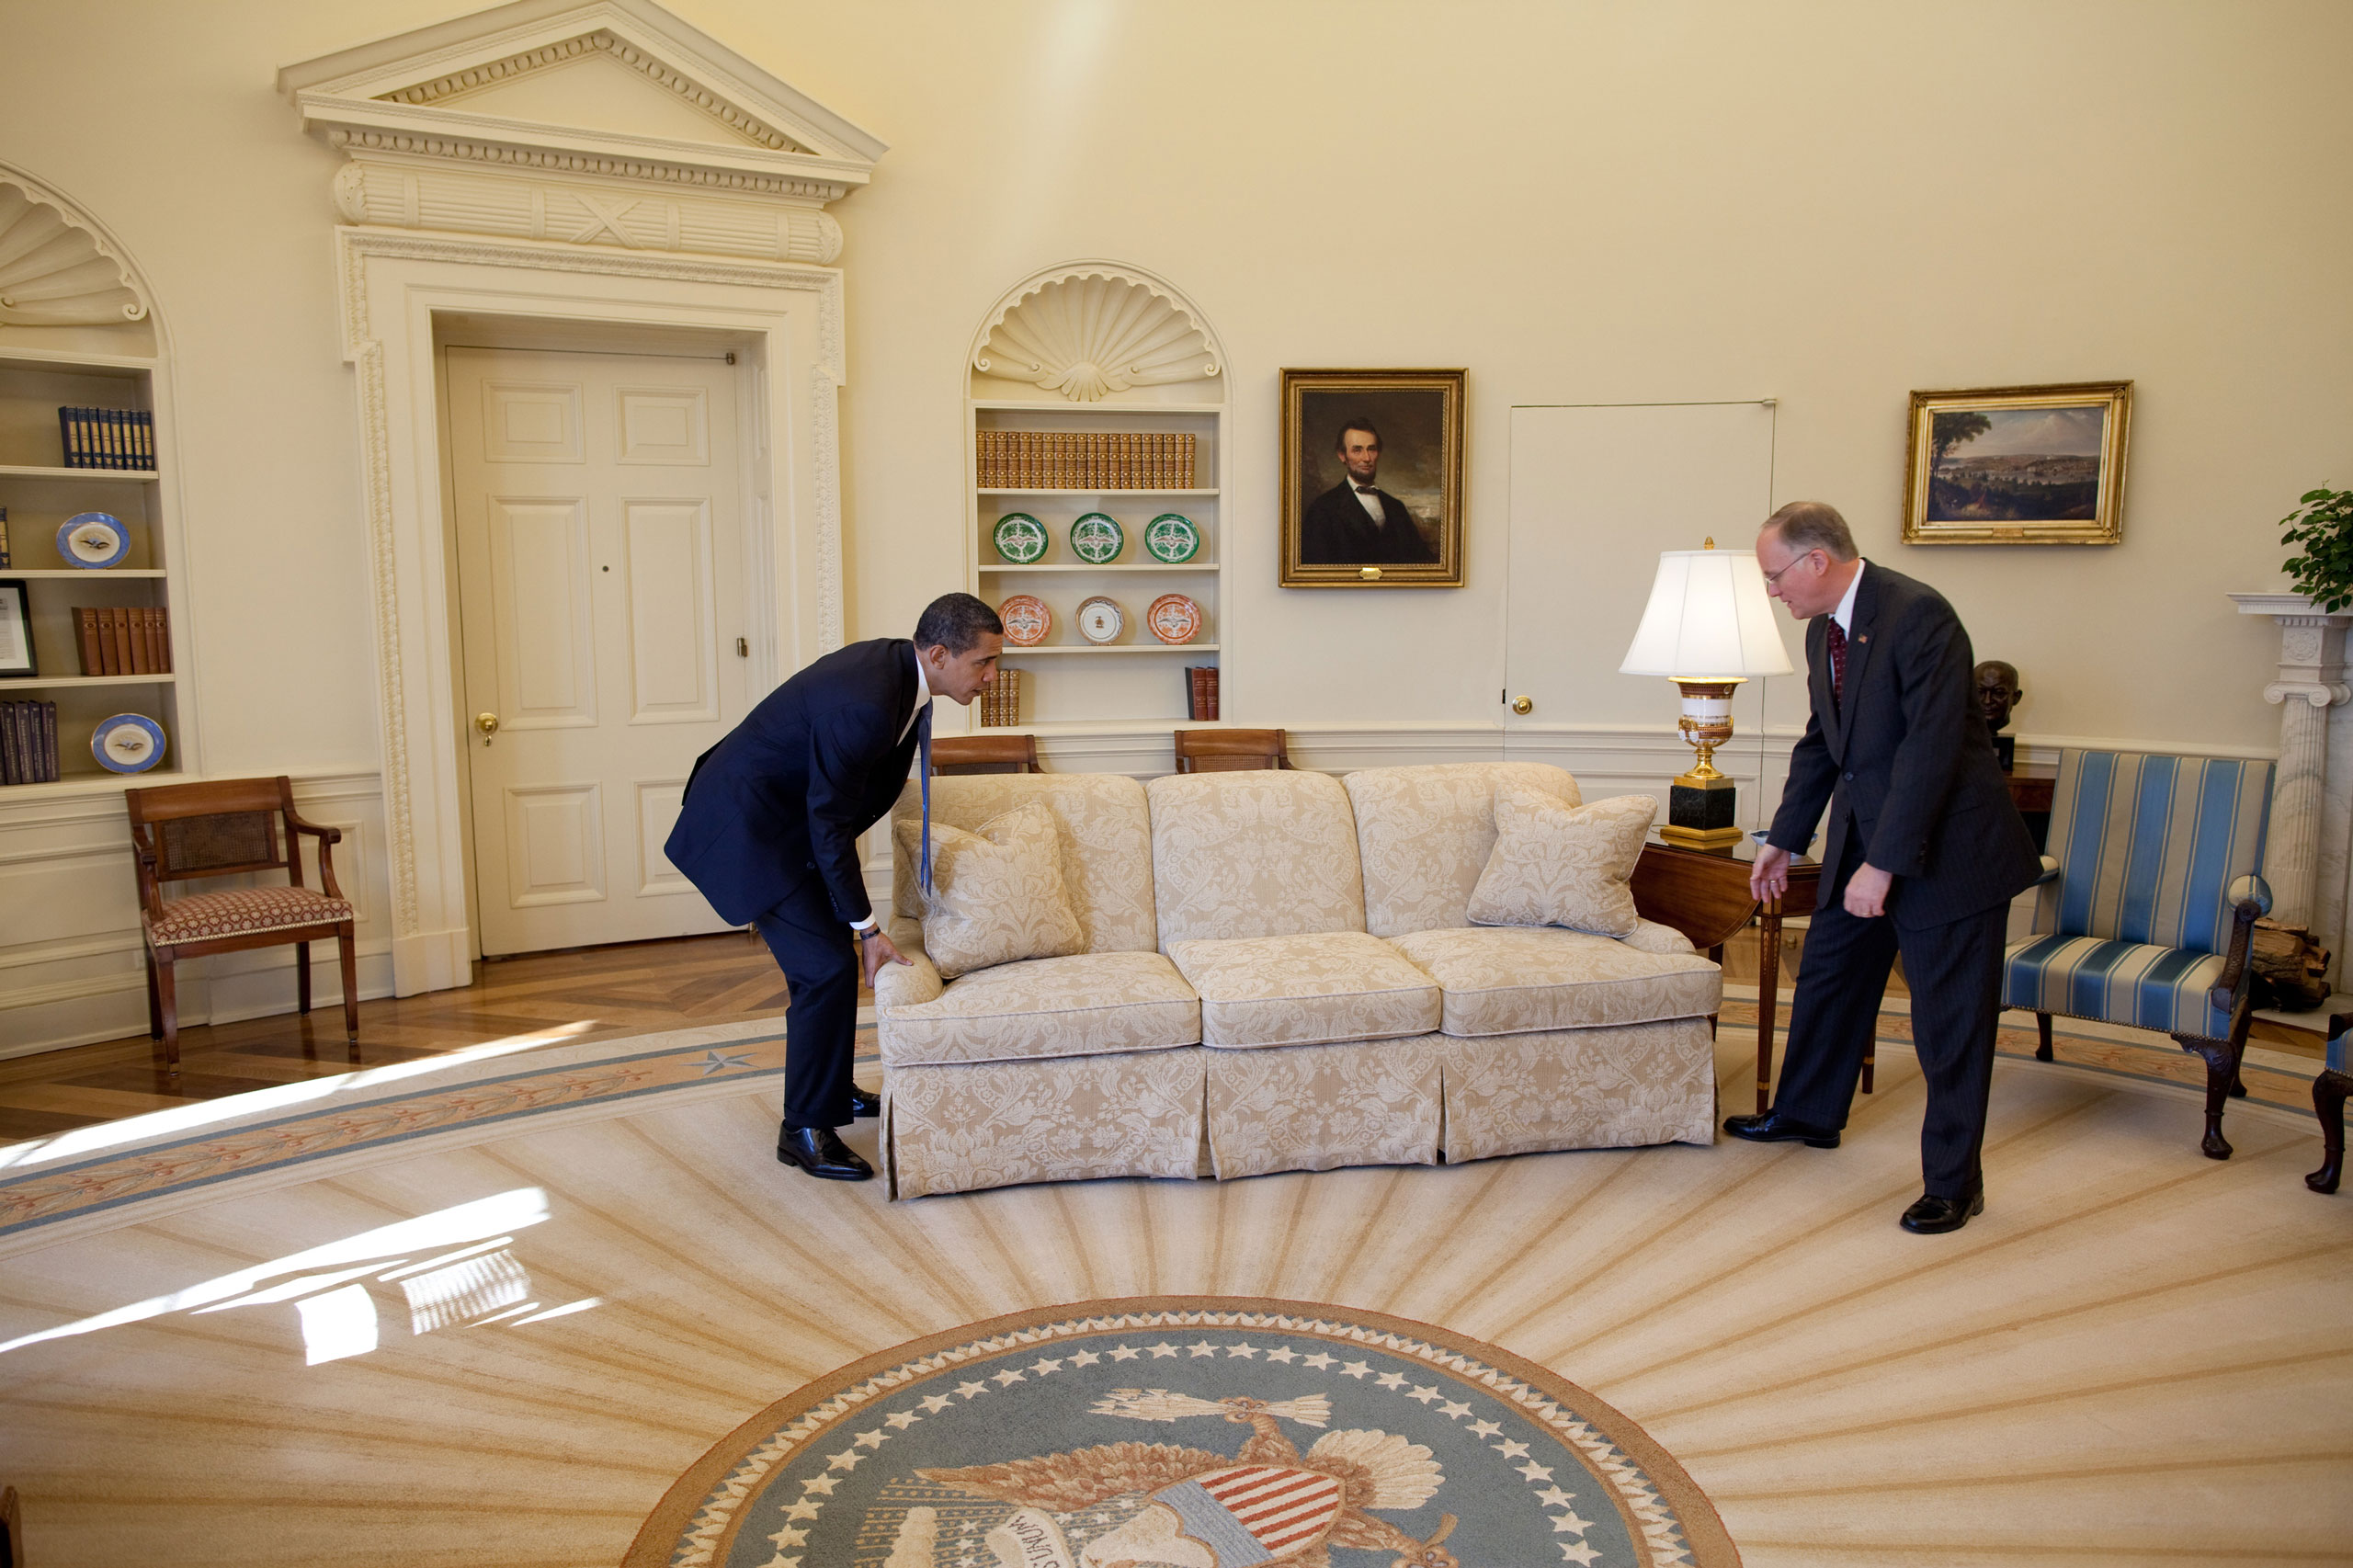 """""""White House valets had moved the sofas in the Oval Office to accommodate the large number of press photographers that were covering the President's meeting with Vermont Gov. Jim Douglas. When the photo-op ended, the President said to Gov. Douglas, 'let's move the sofas back in place.' Gov. Douglas didn't quite know what to do as the President did the heavy lifting. The valets now good-naturedly cringe when they look at this picture because it was their responsibility to move the sofas back in place,"""" Feb. 2, 2009."""